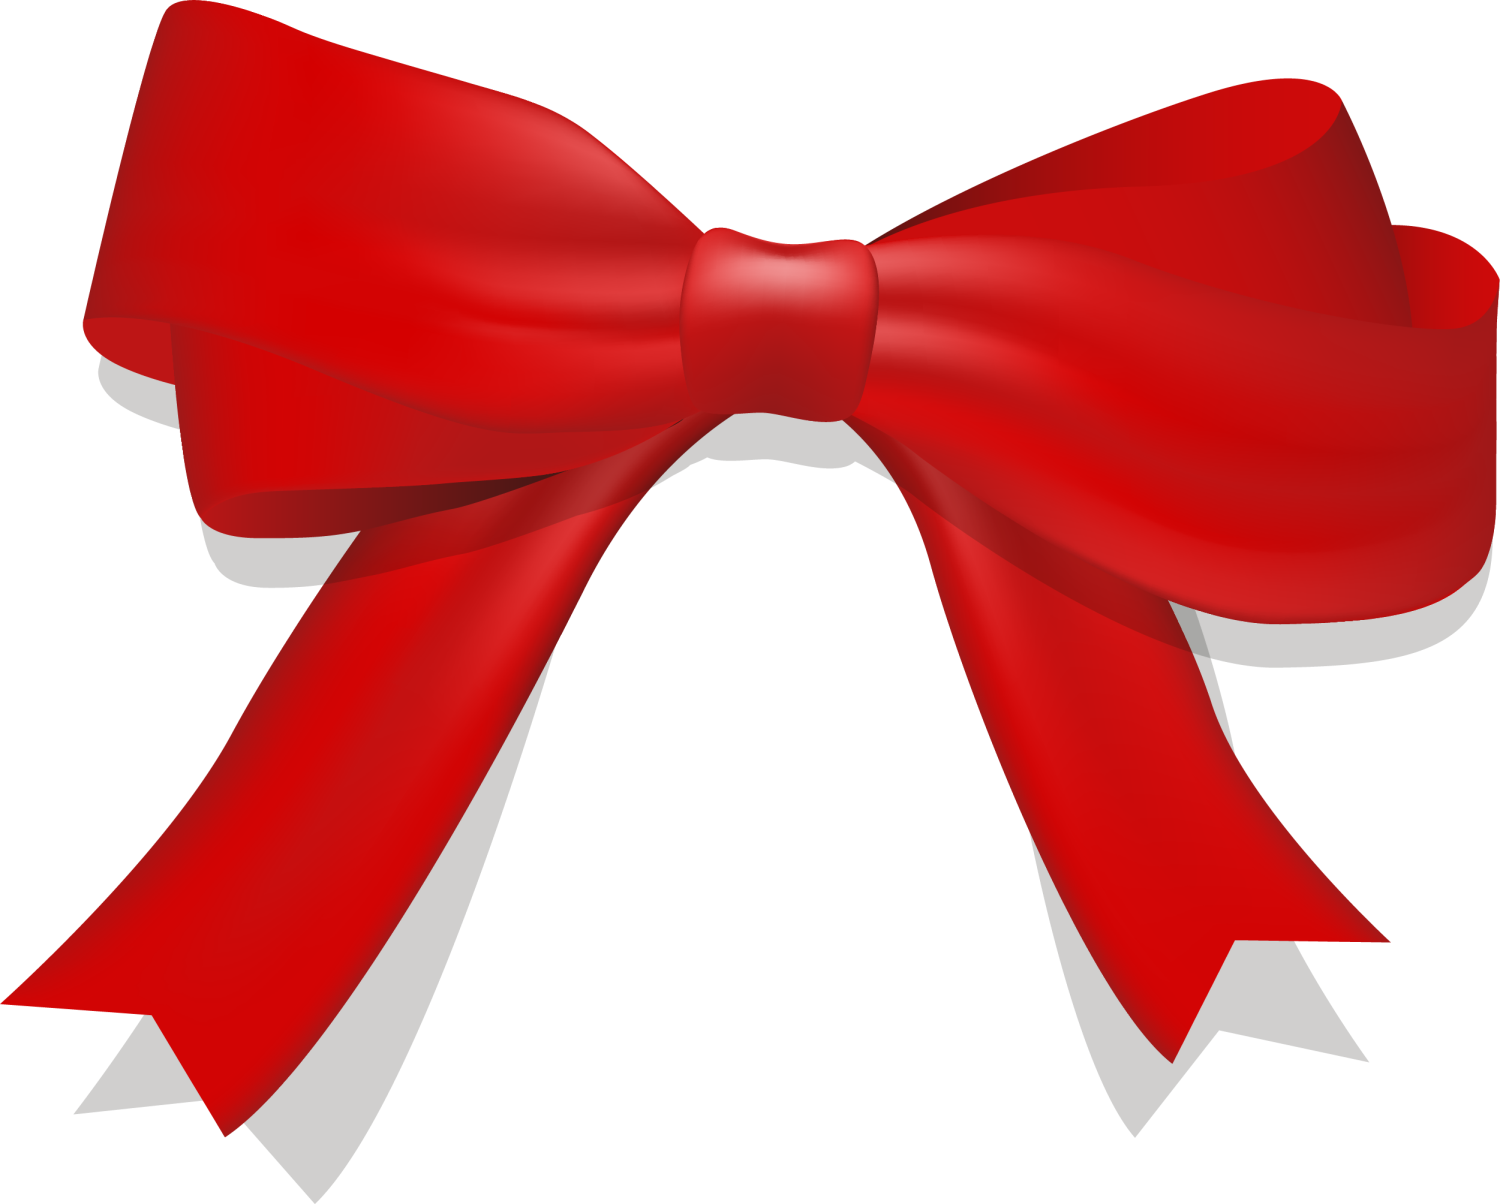 Lace clipart knot. Bow tie red cartoon